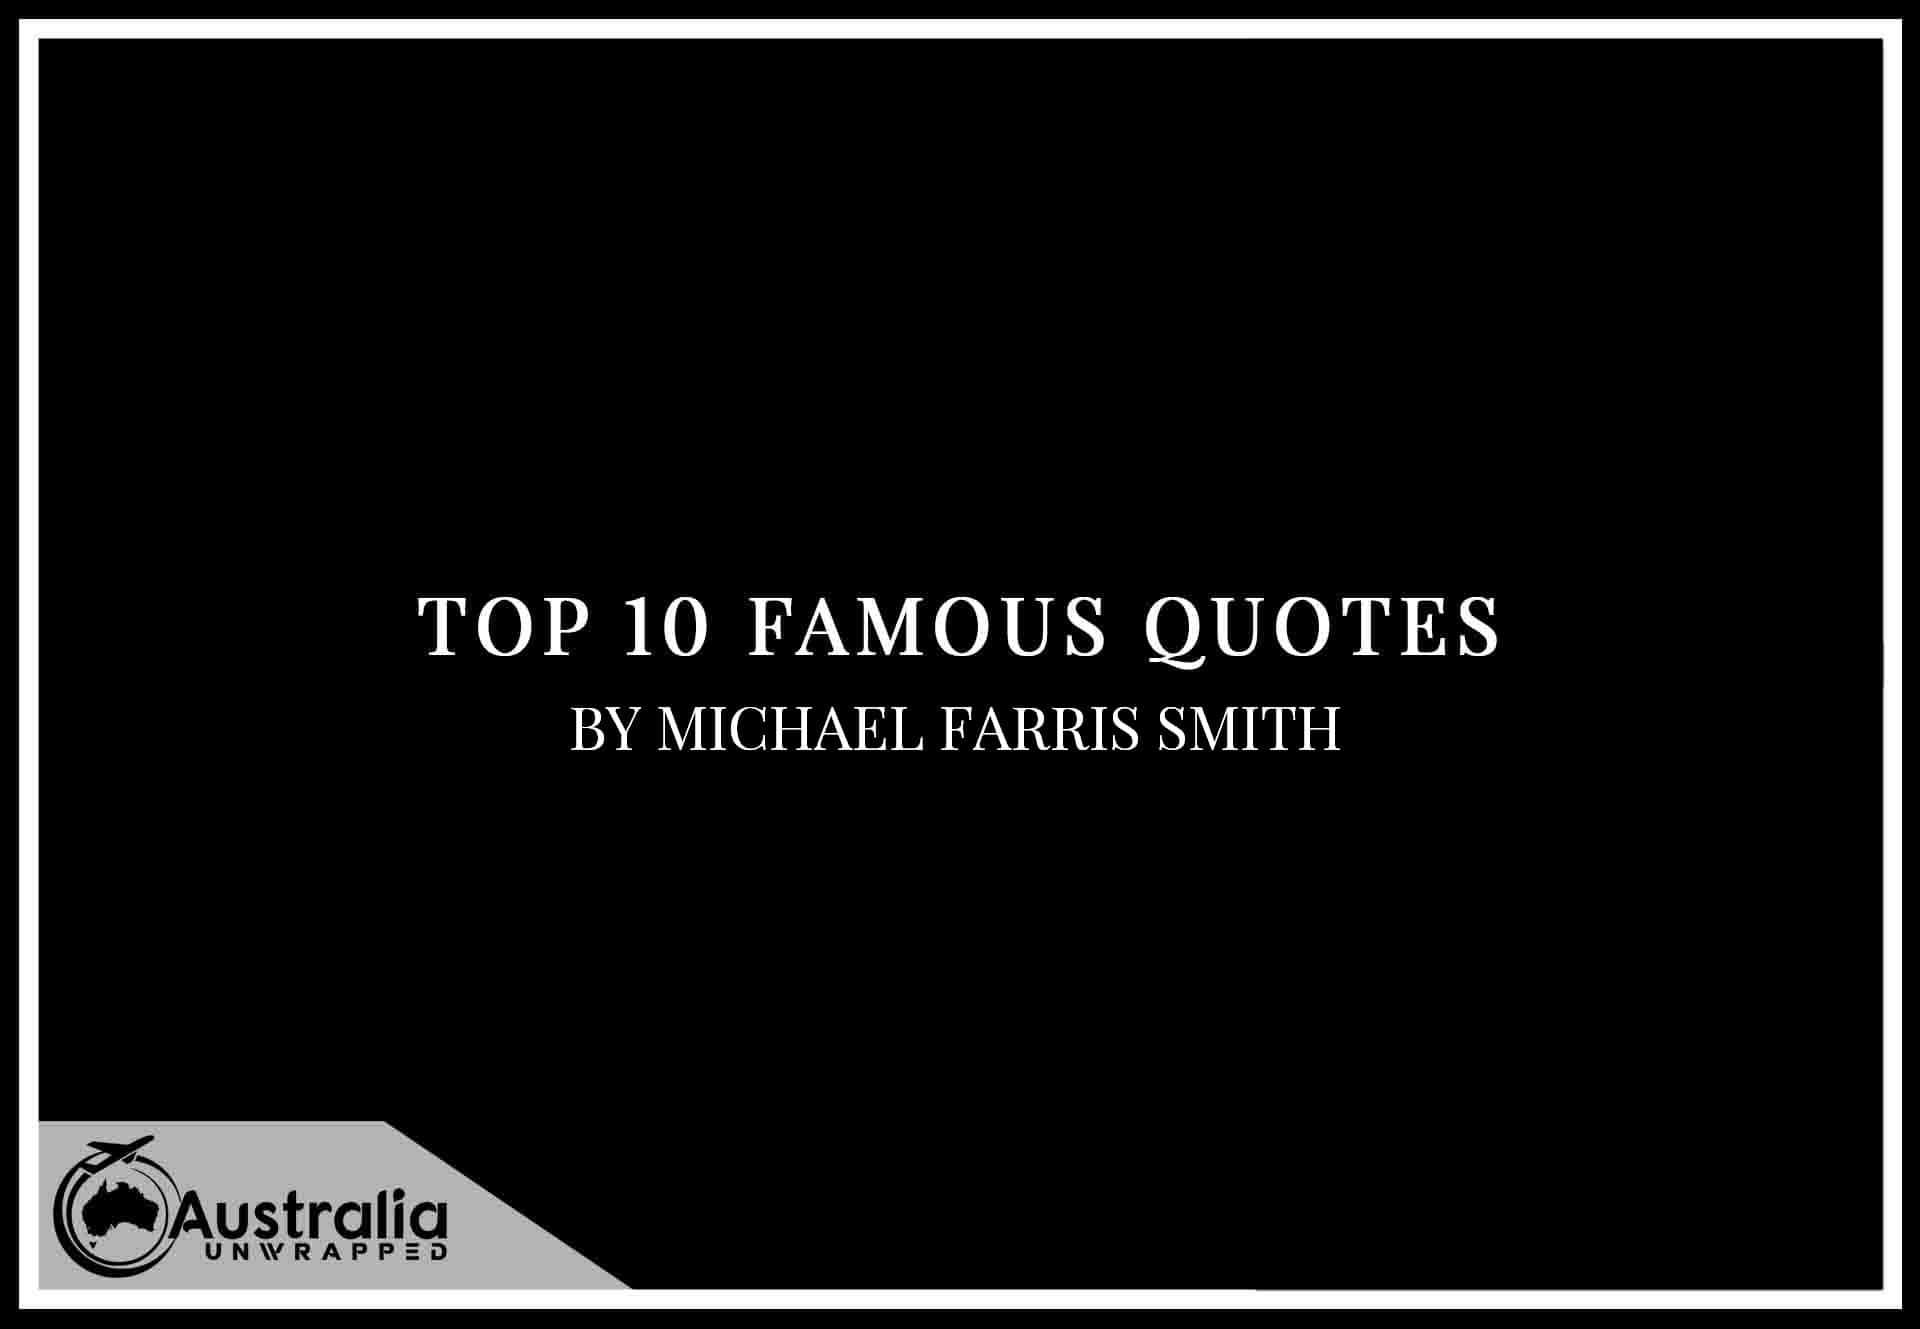 Top 10 Famous Quotes by Author Michael Farris Smith